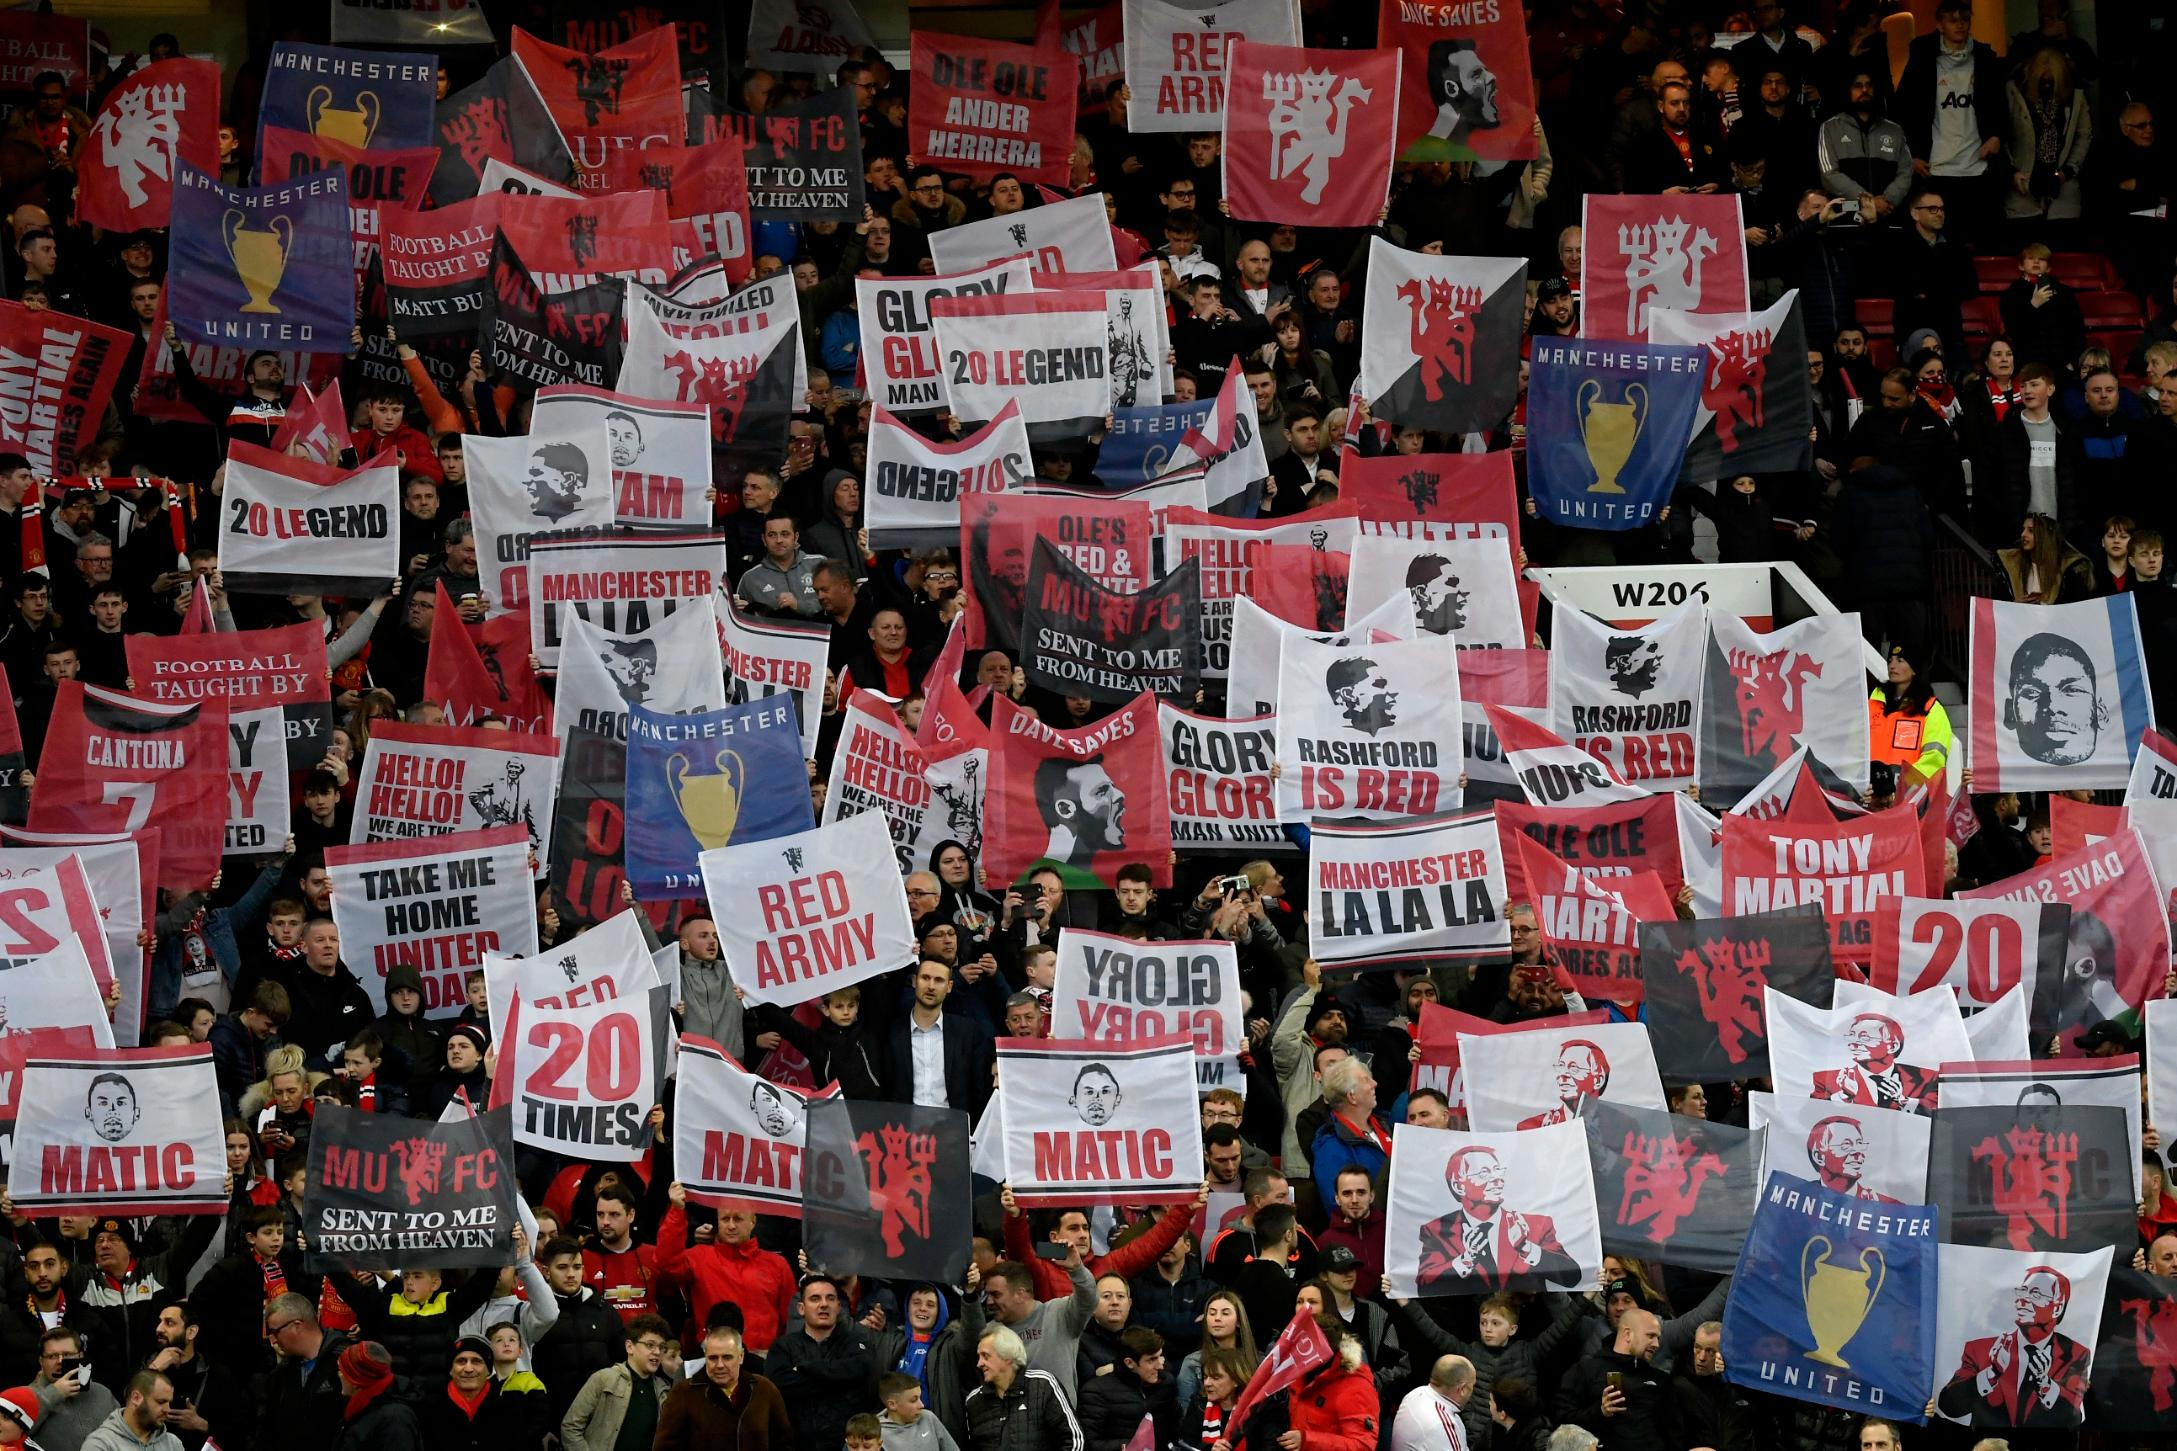 Football fan groups condemn 'ultimate betrayal' of European Super League